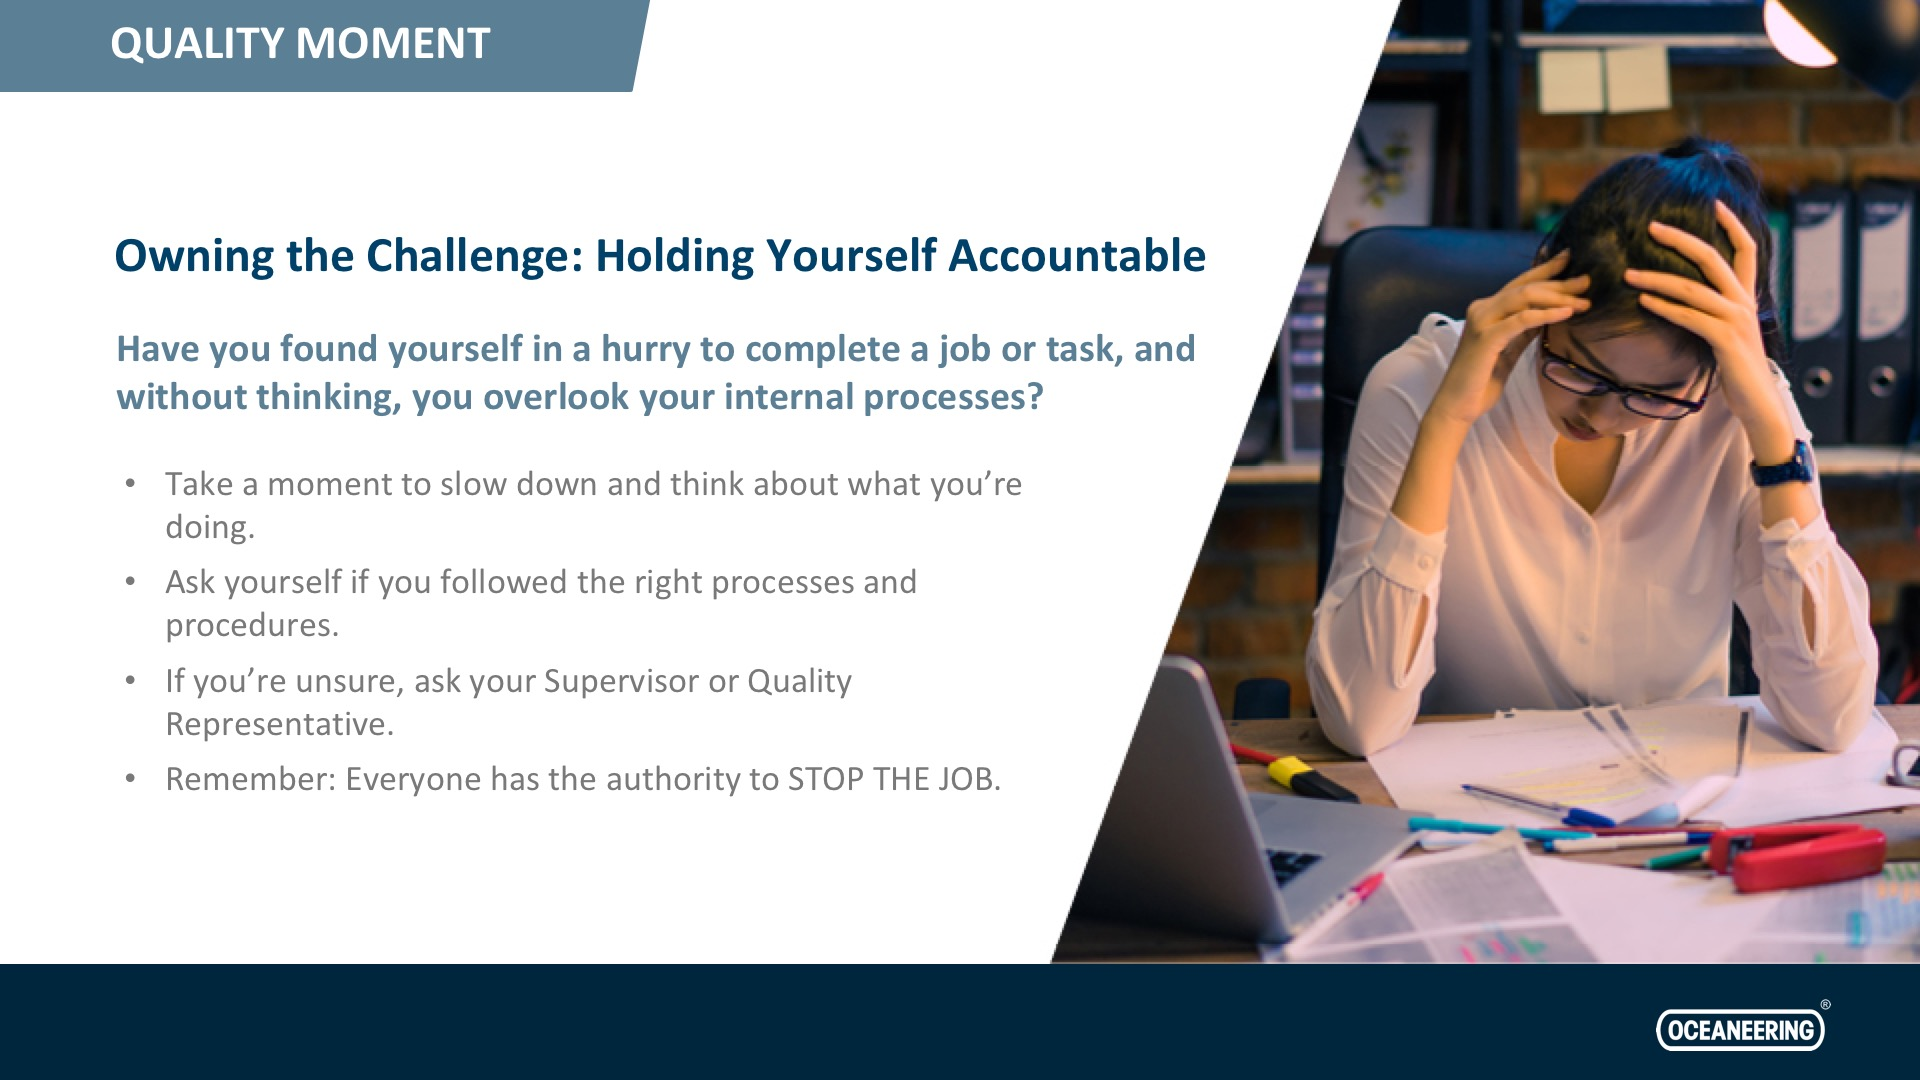 Owning the Challenge: Holding Yourself Accountable